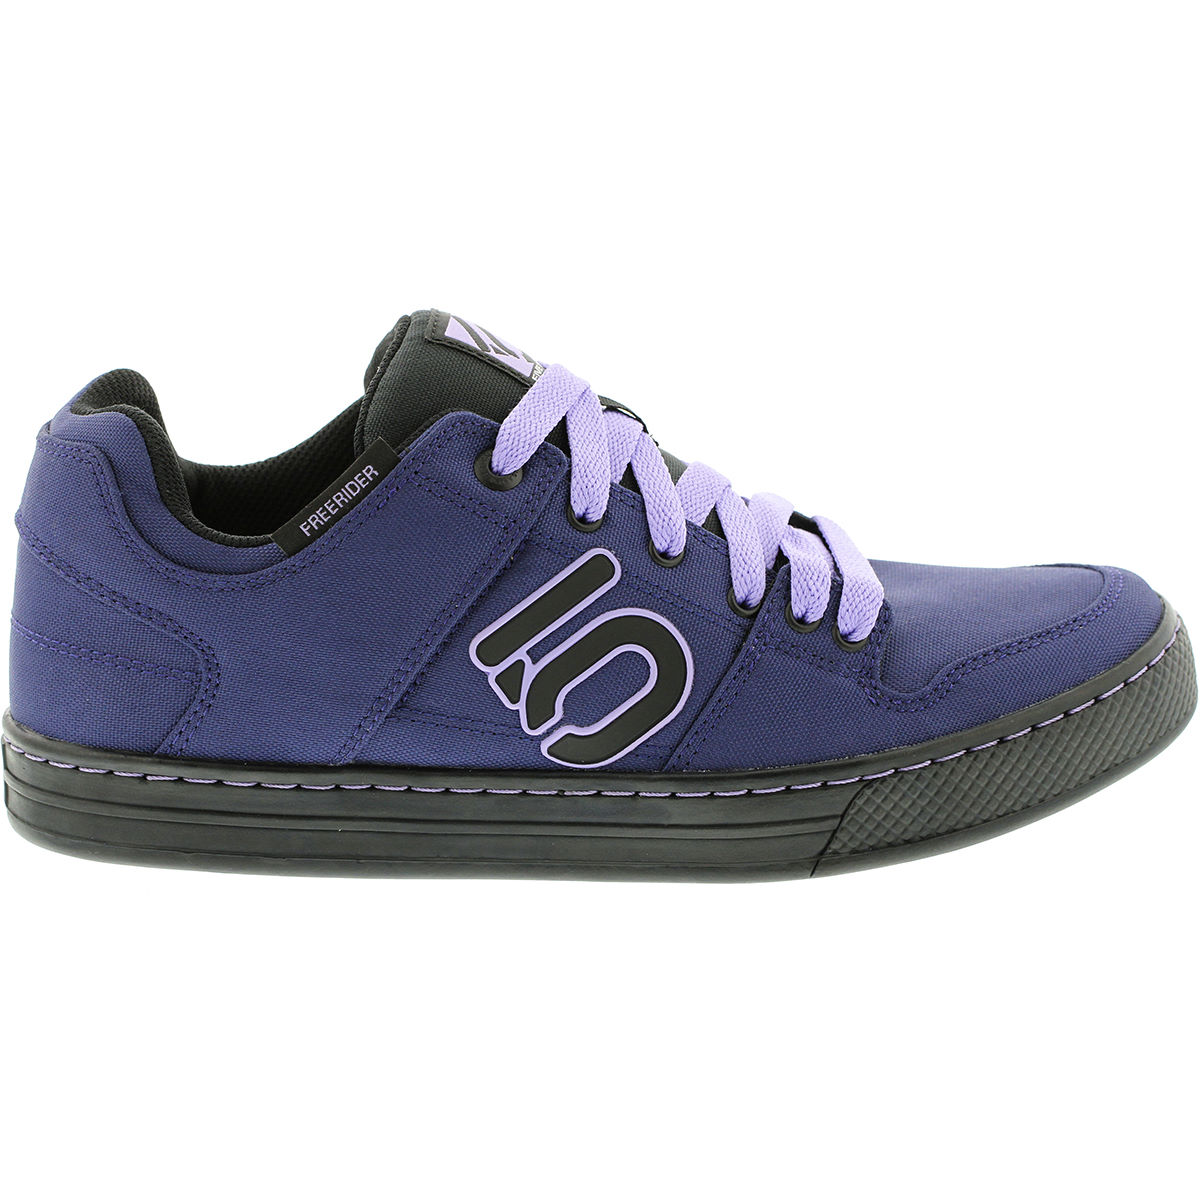 Chaussures VTT Femme Five Ten Freerider Canvas - EU 44 Indigo